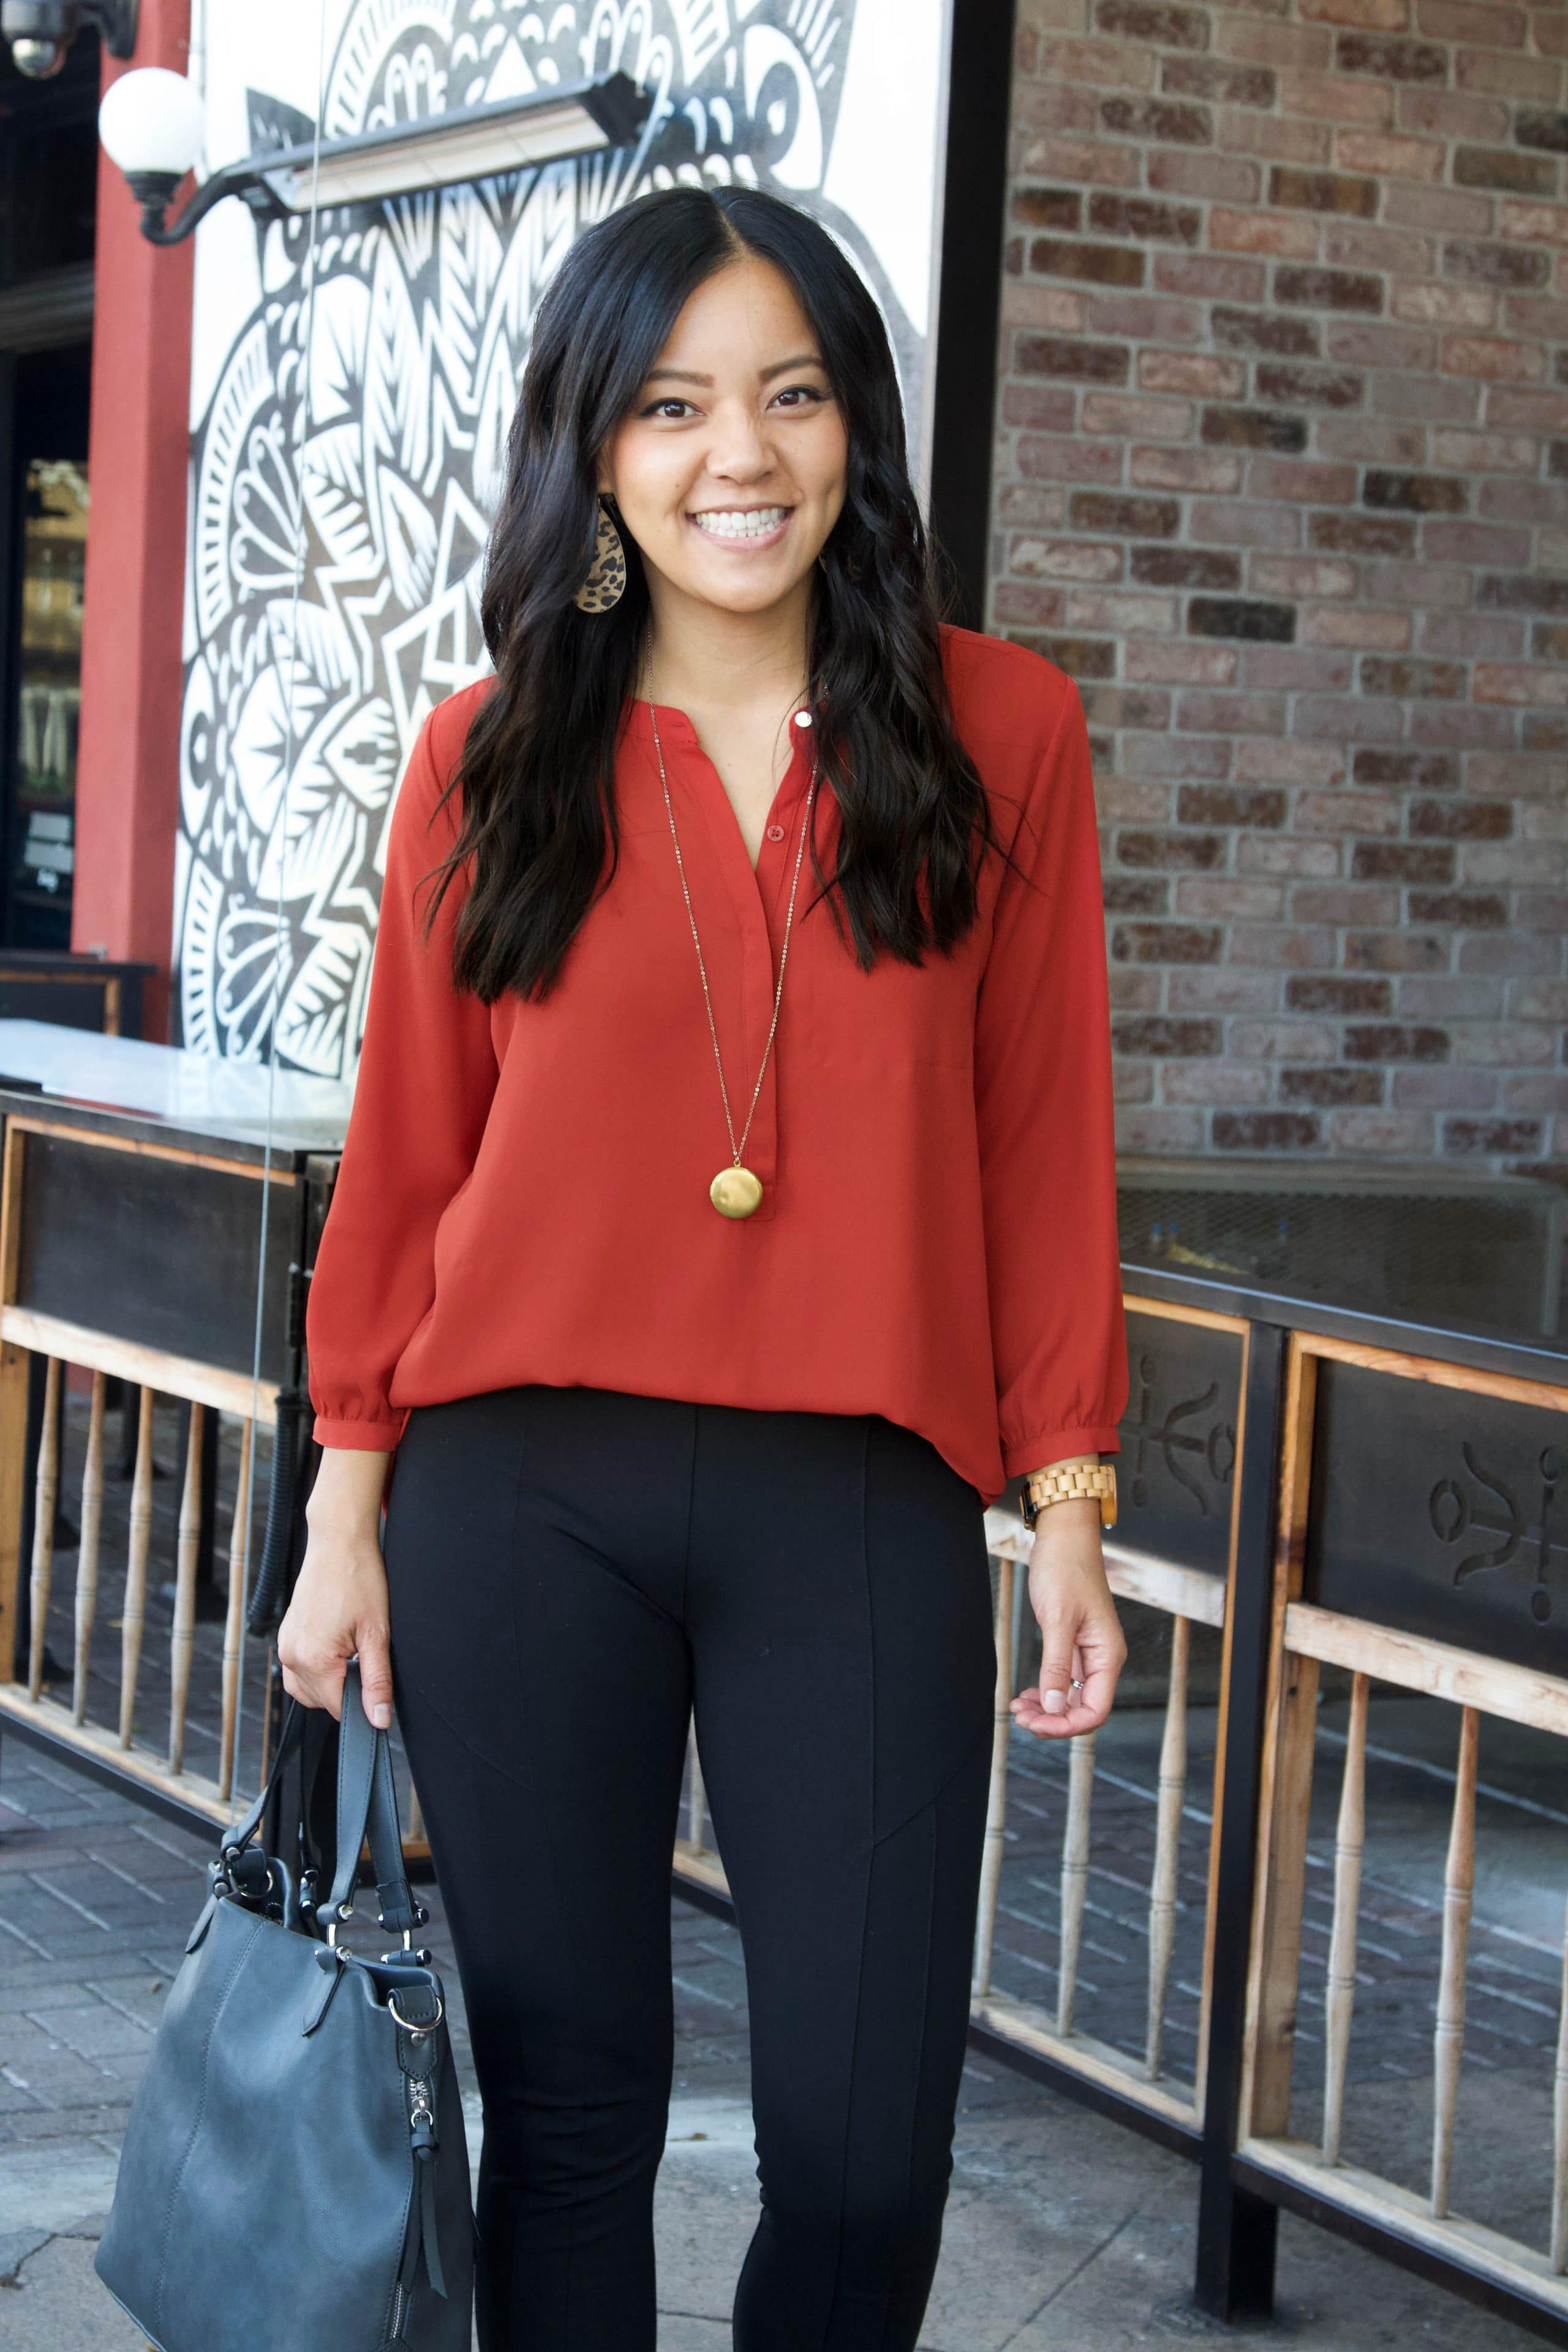 leopard print booties + burnt orange blouse + black skinny pants + grey purse + business casual outfit